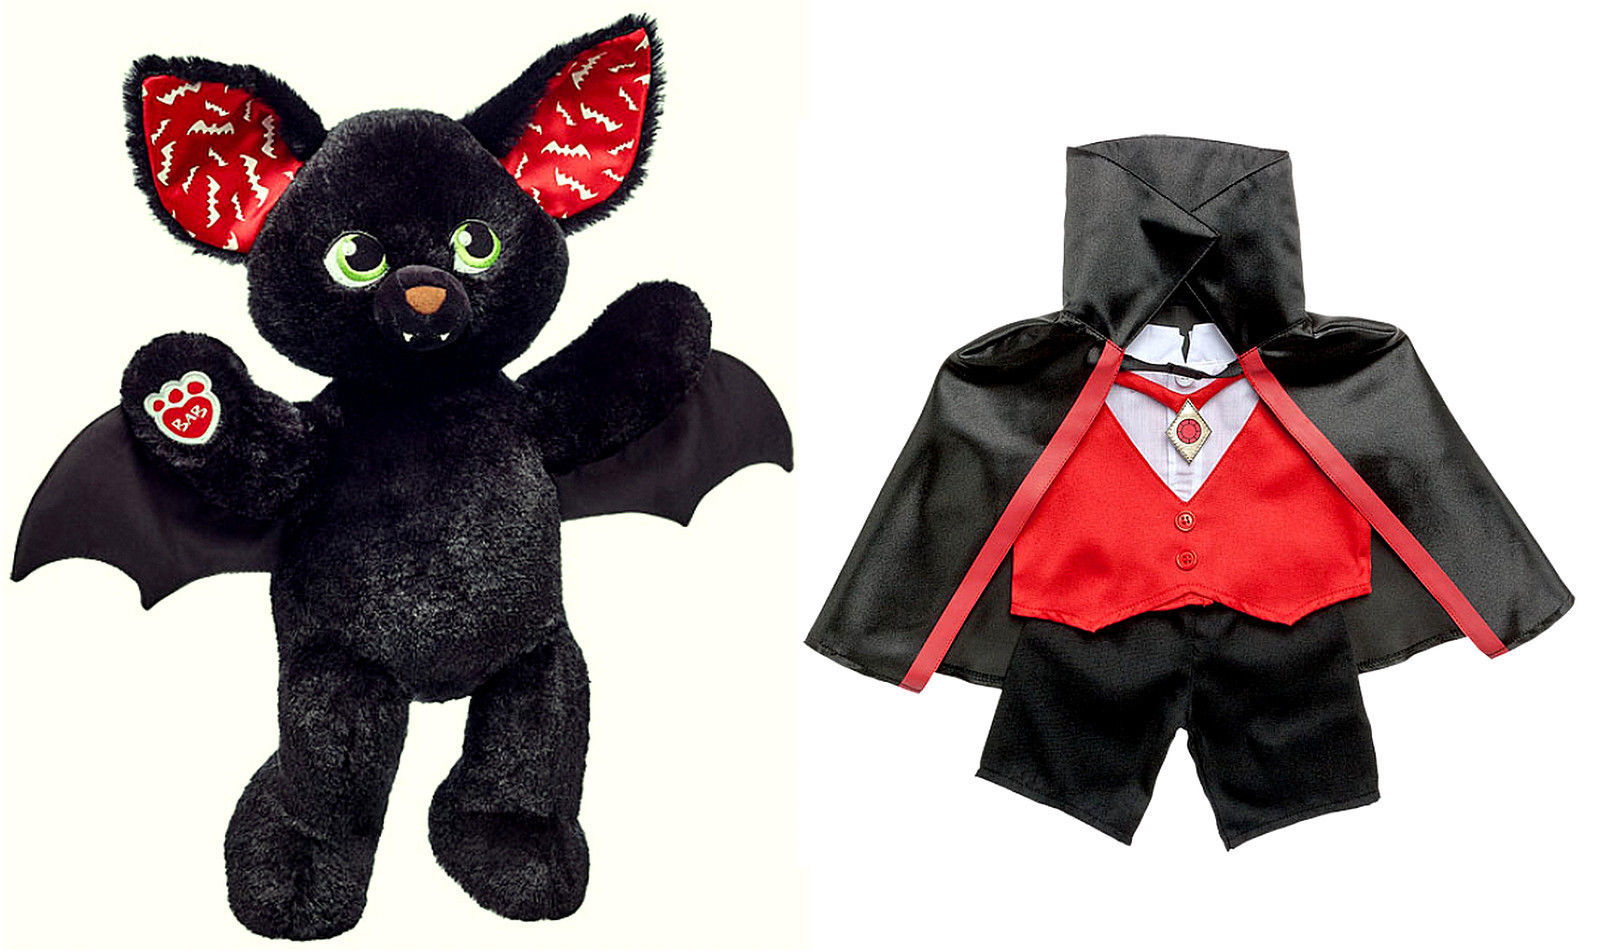 S l1600. S l1600. Build a Bear Halloween ...  sc 1 st  Bonanza & Build a Bear Halloween Boo-rrific Black Bat and 49 similar items